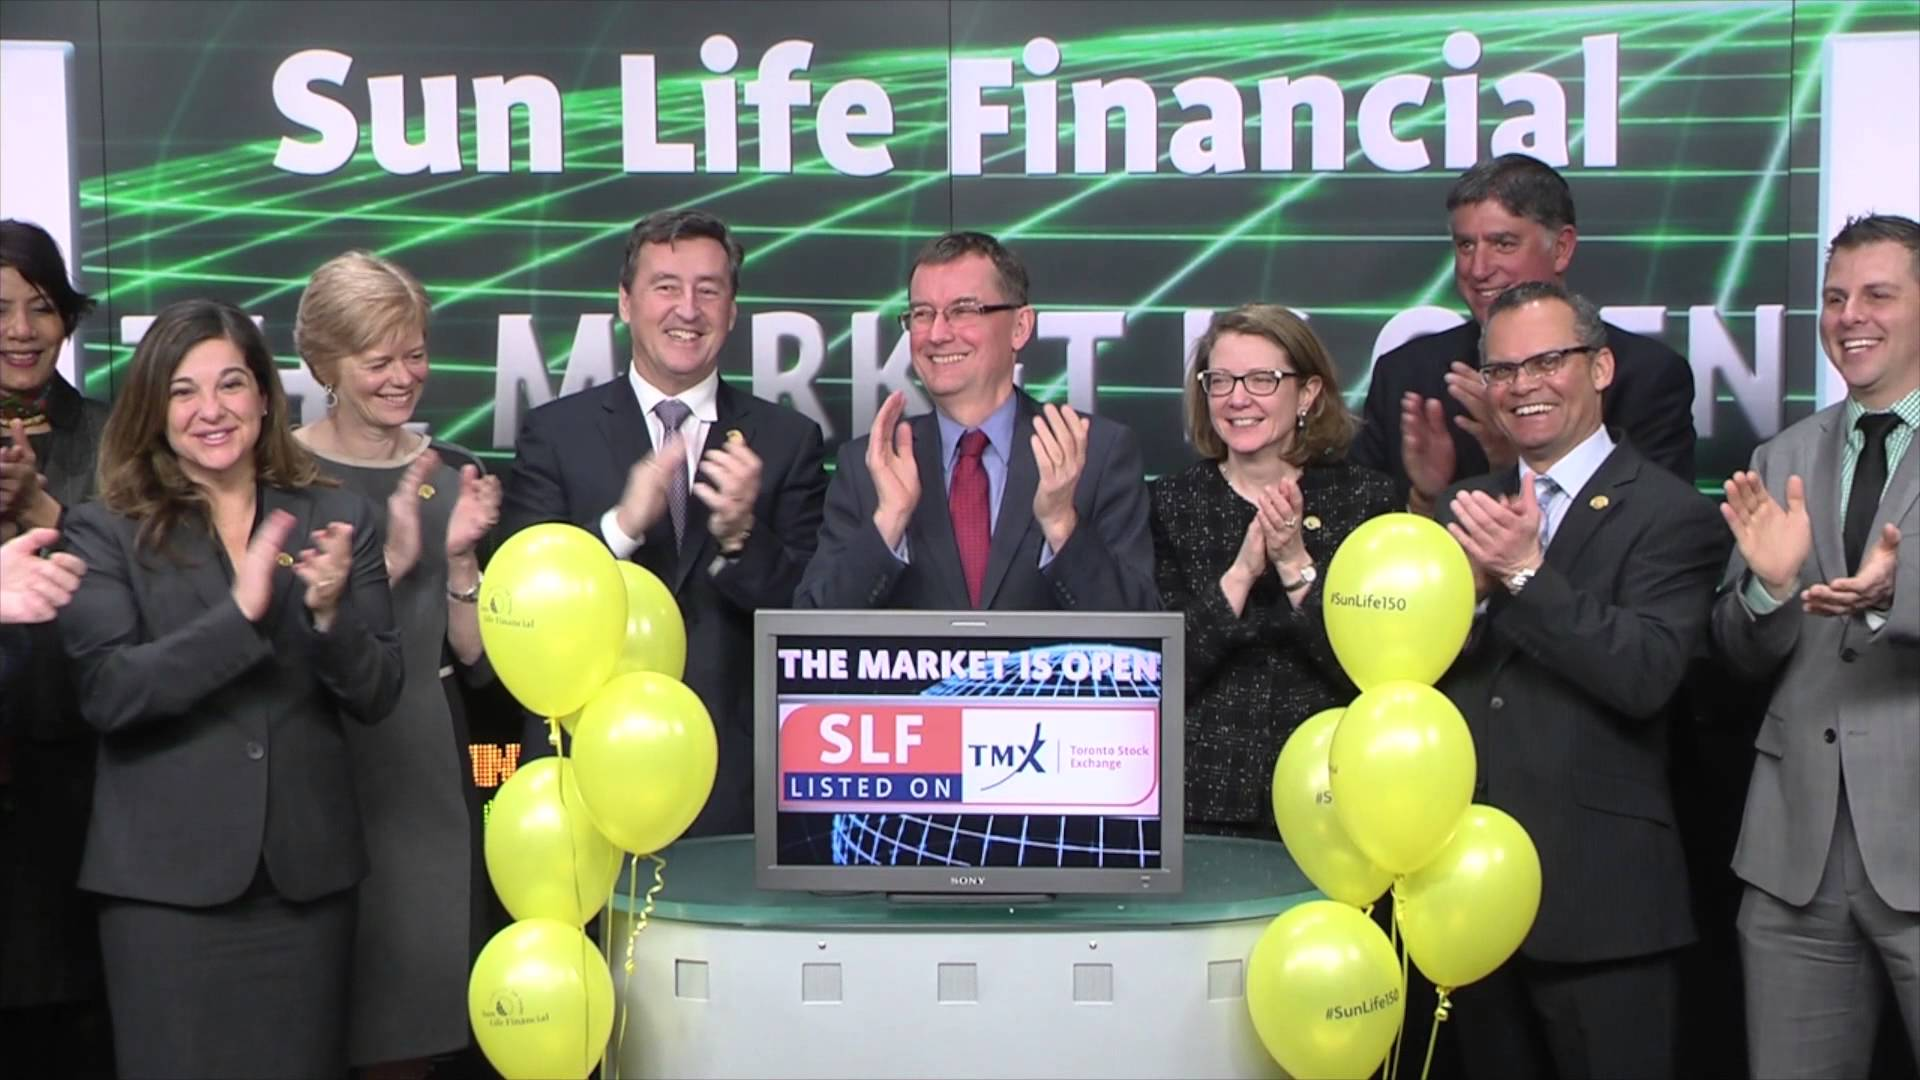 Sun Life Financial (TSX:SLF) opens Toronto Stock Exchange, March 2, 2015